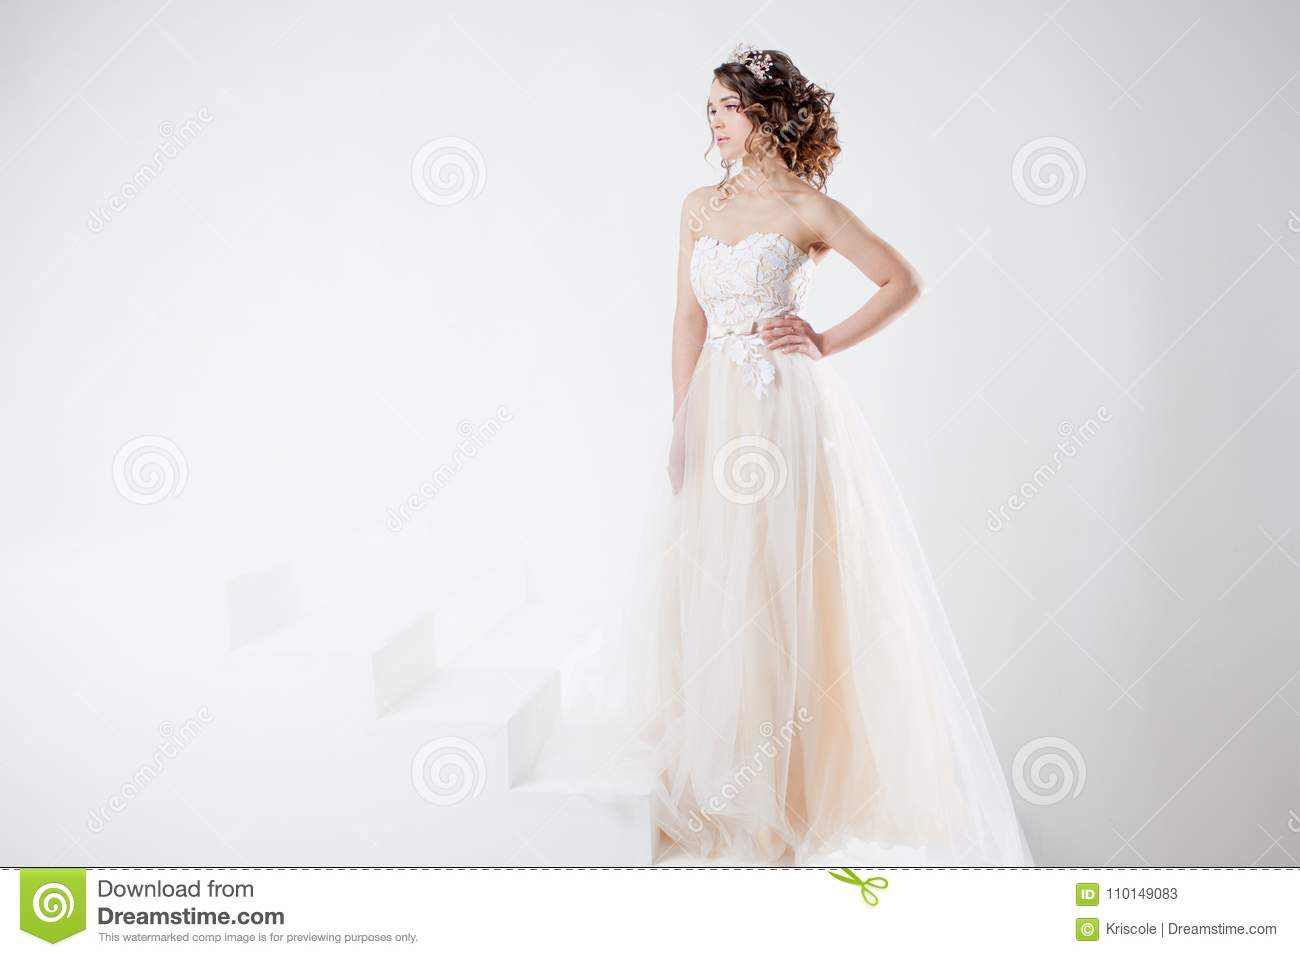 Dresses wedding with sleeves in cute concepts recommend to wear in autumn in 2019